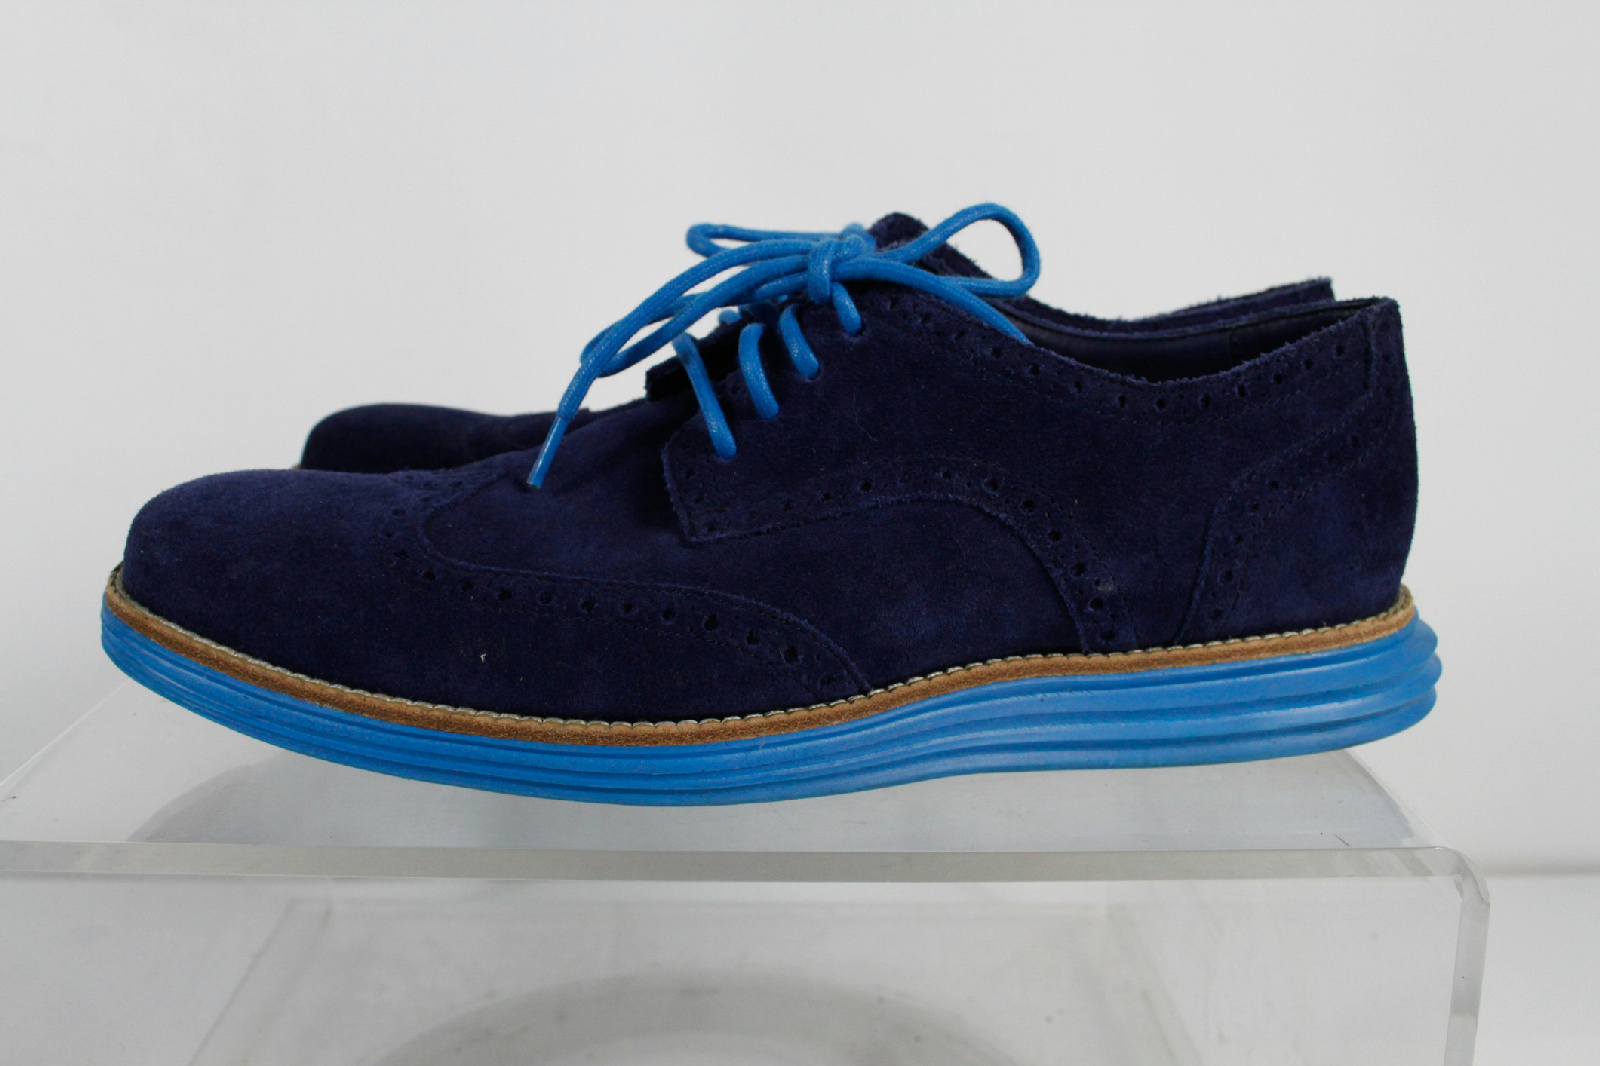 cole haan blue suede lace up oxford shoes size 8 5 m